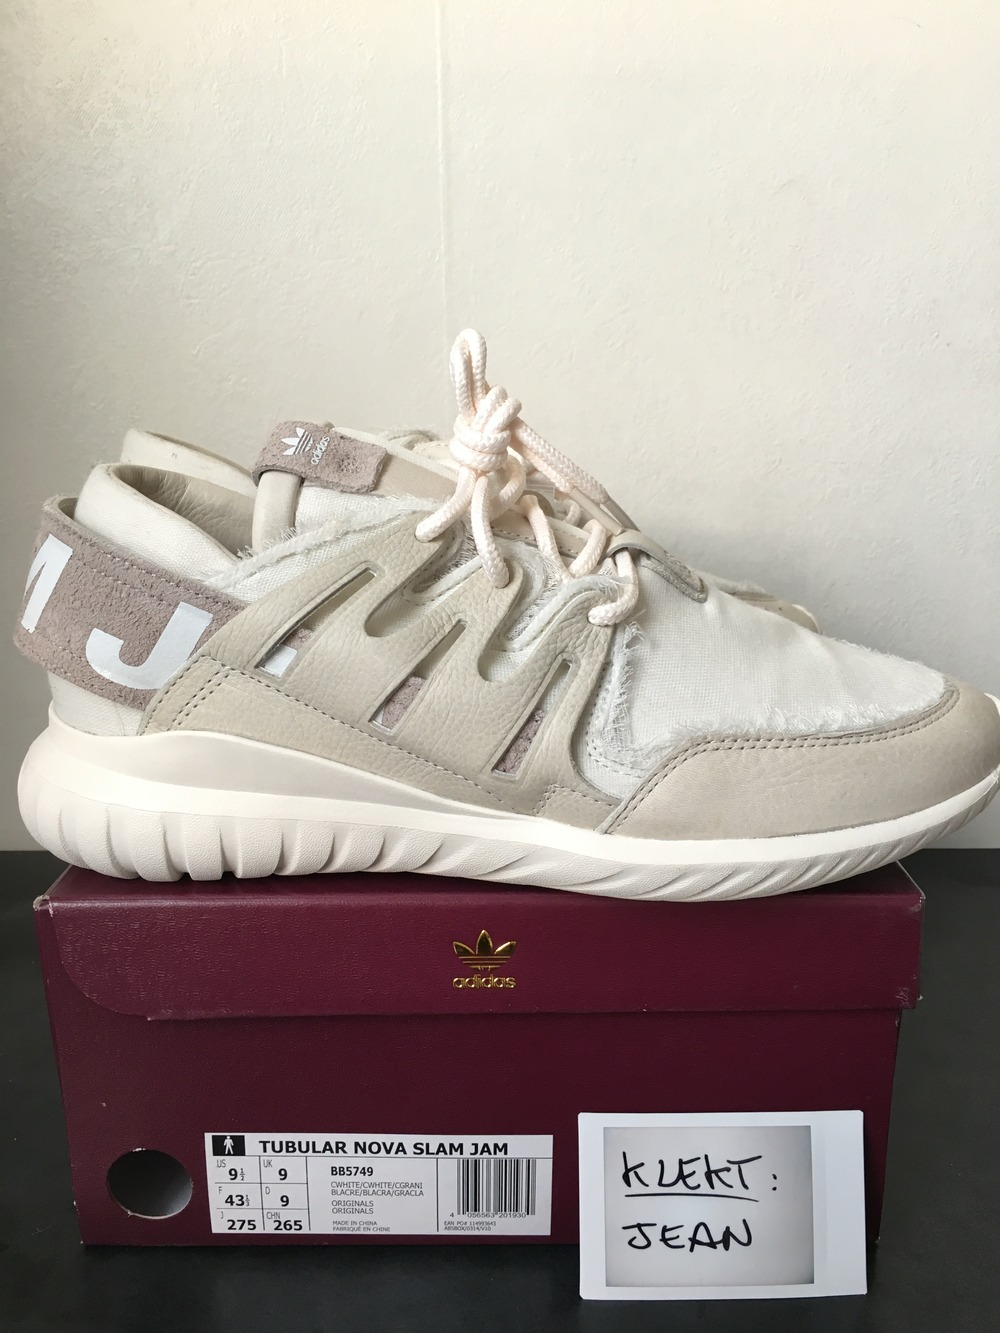 f4435196773 ... detailed images Adidas Tubular Nova X Slam Jam wallbank lfc co uk 71aee  d23a8 ...